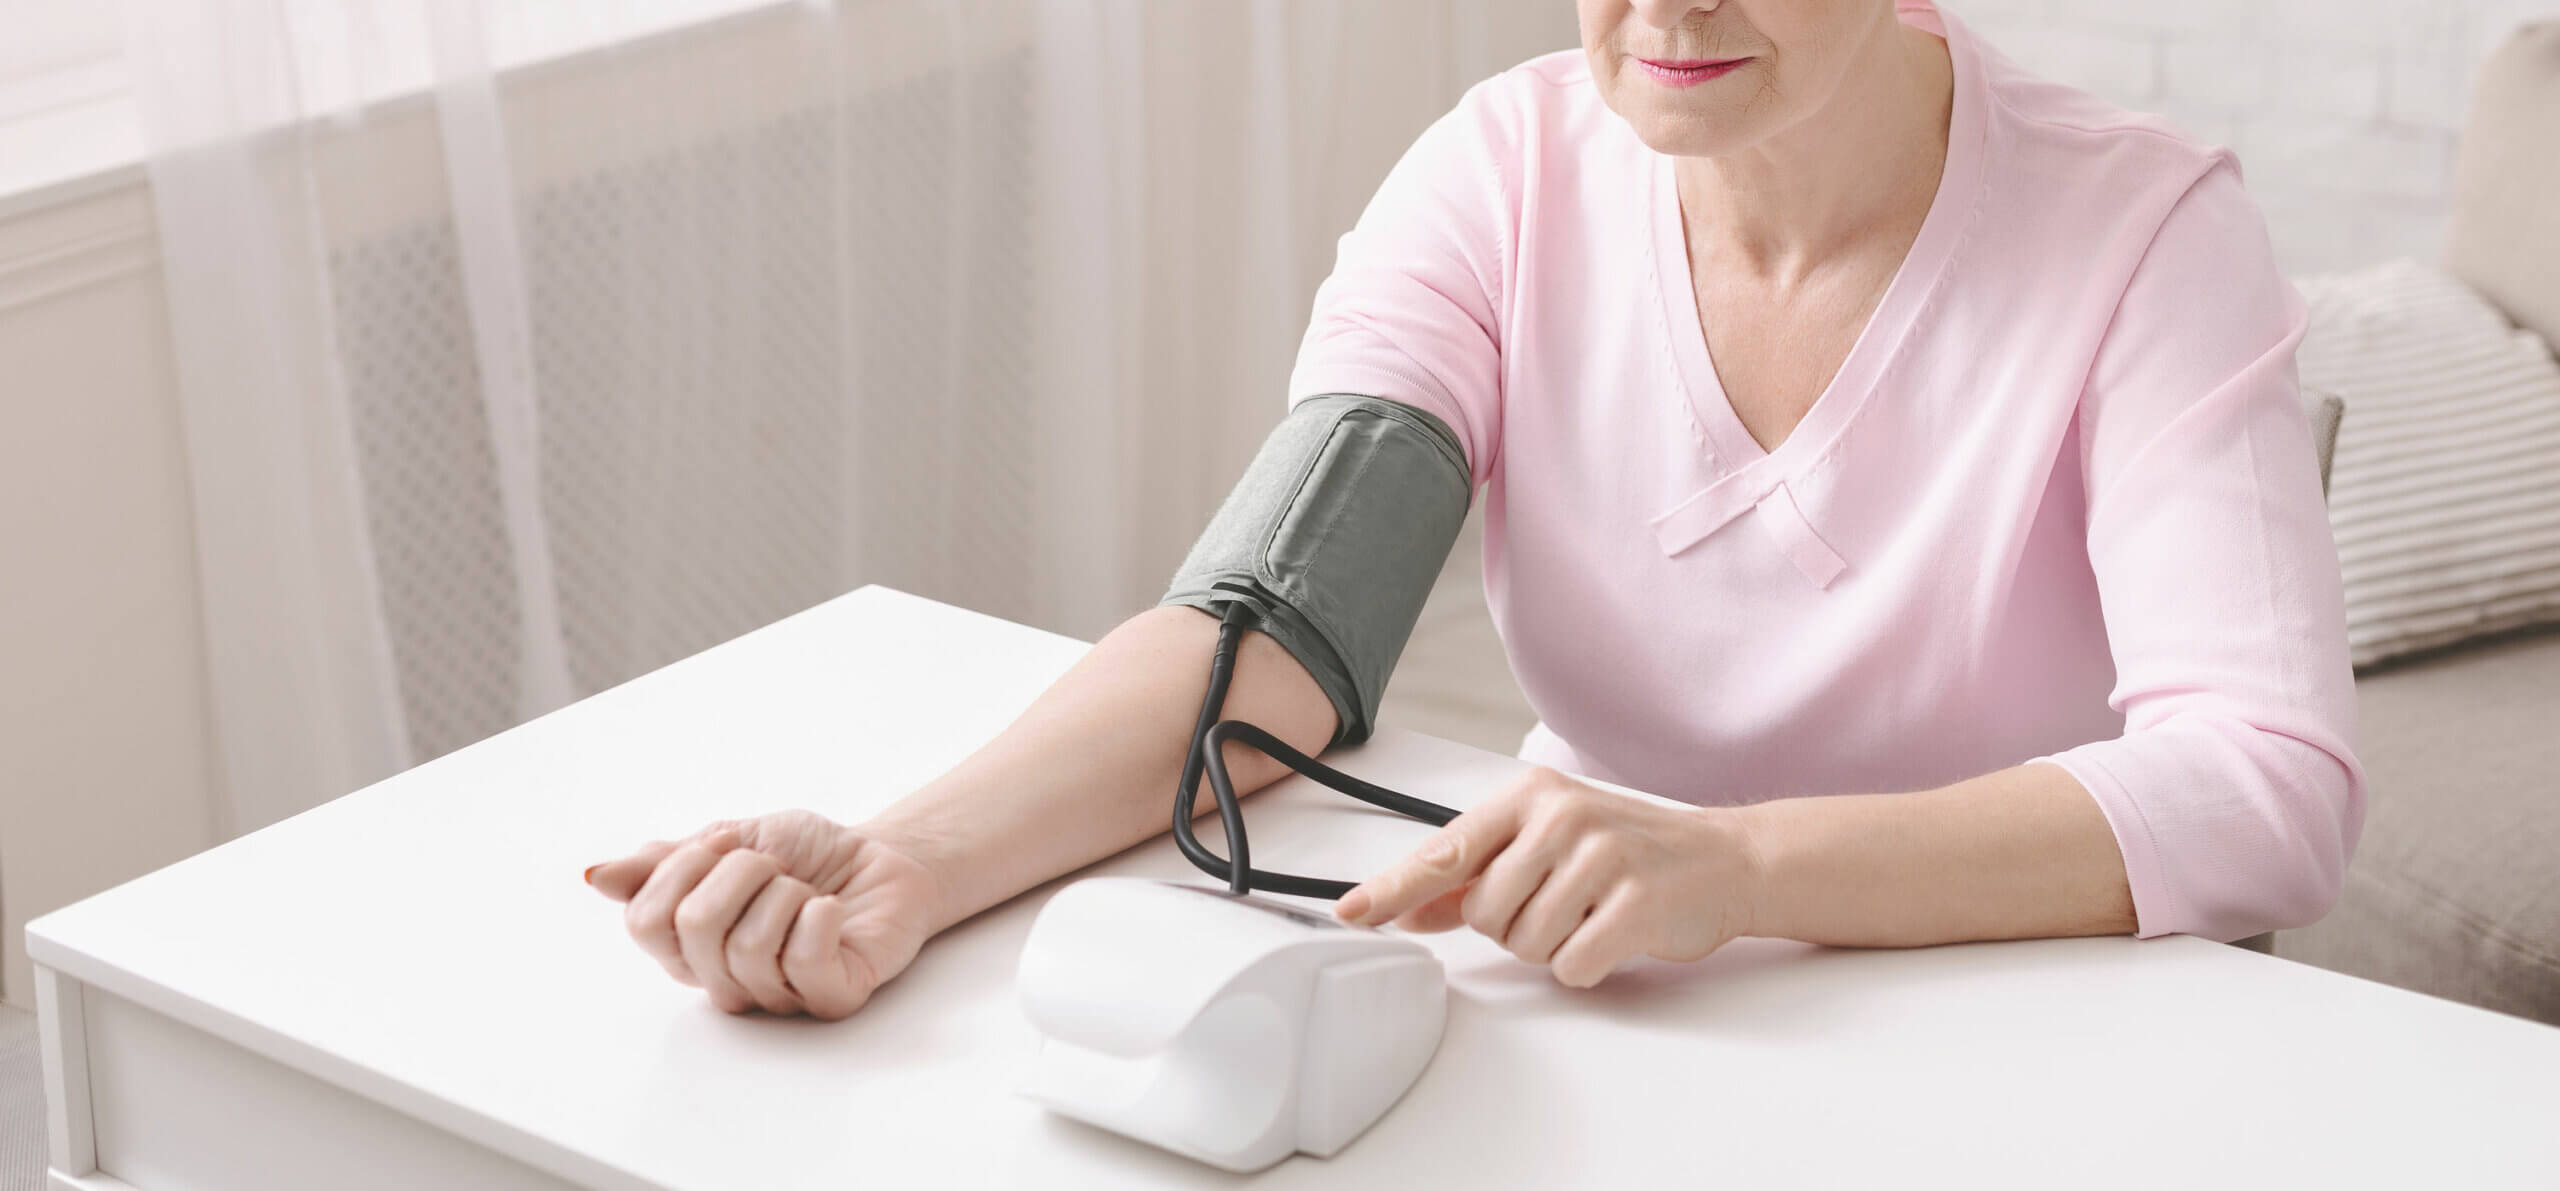 Anxiety dizziness can occur when blood pressure drops quickly.